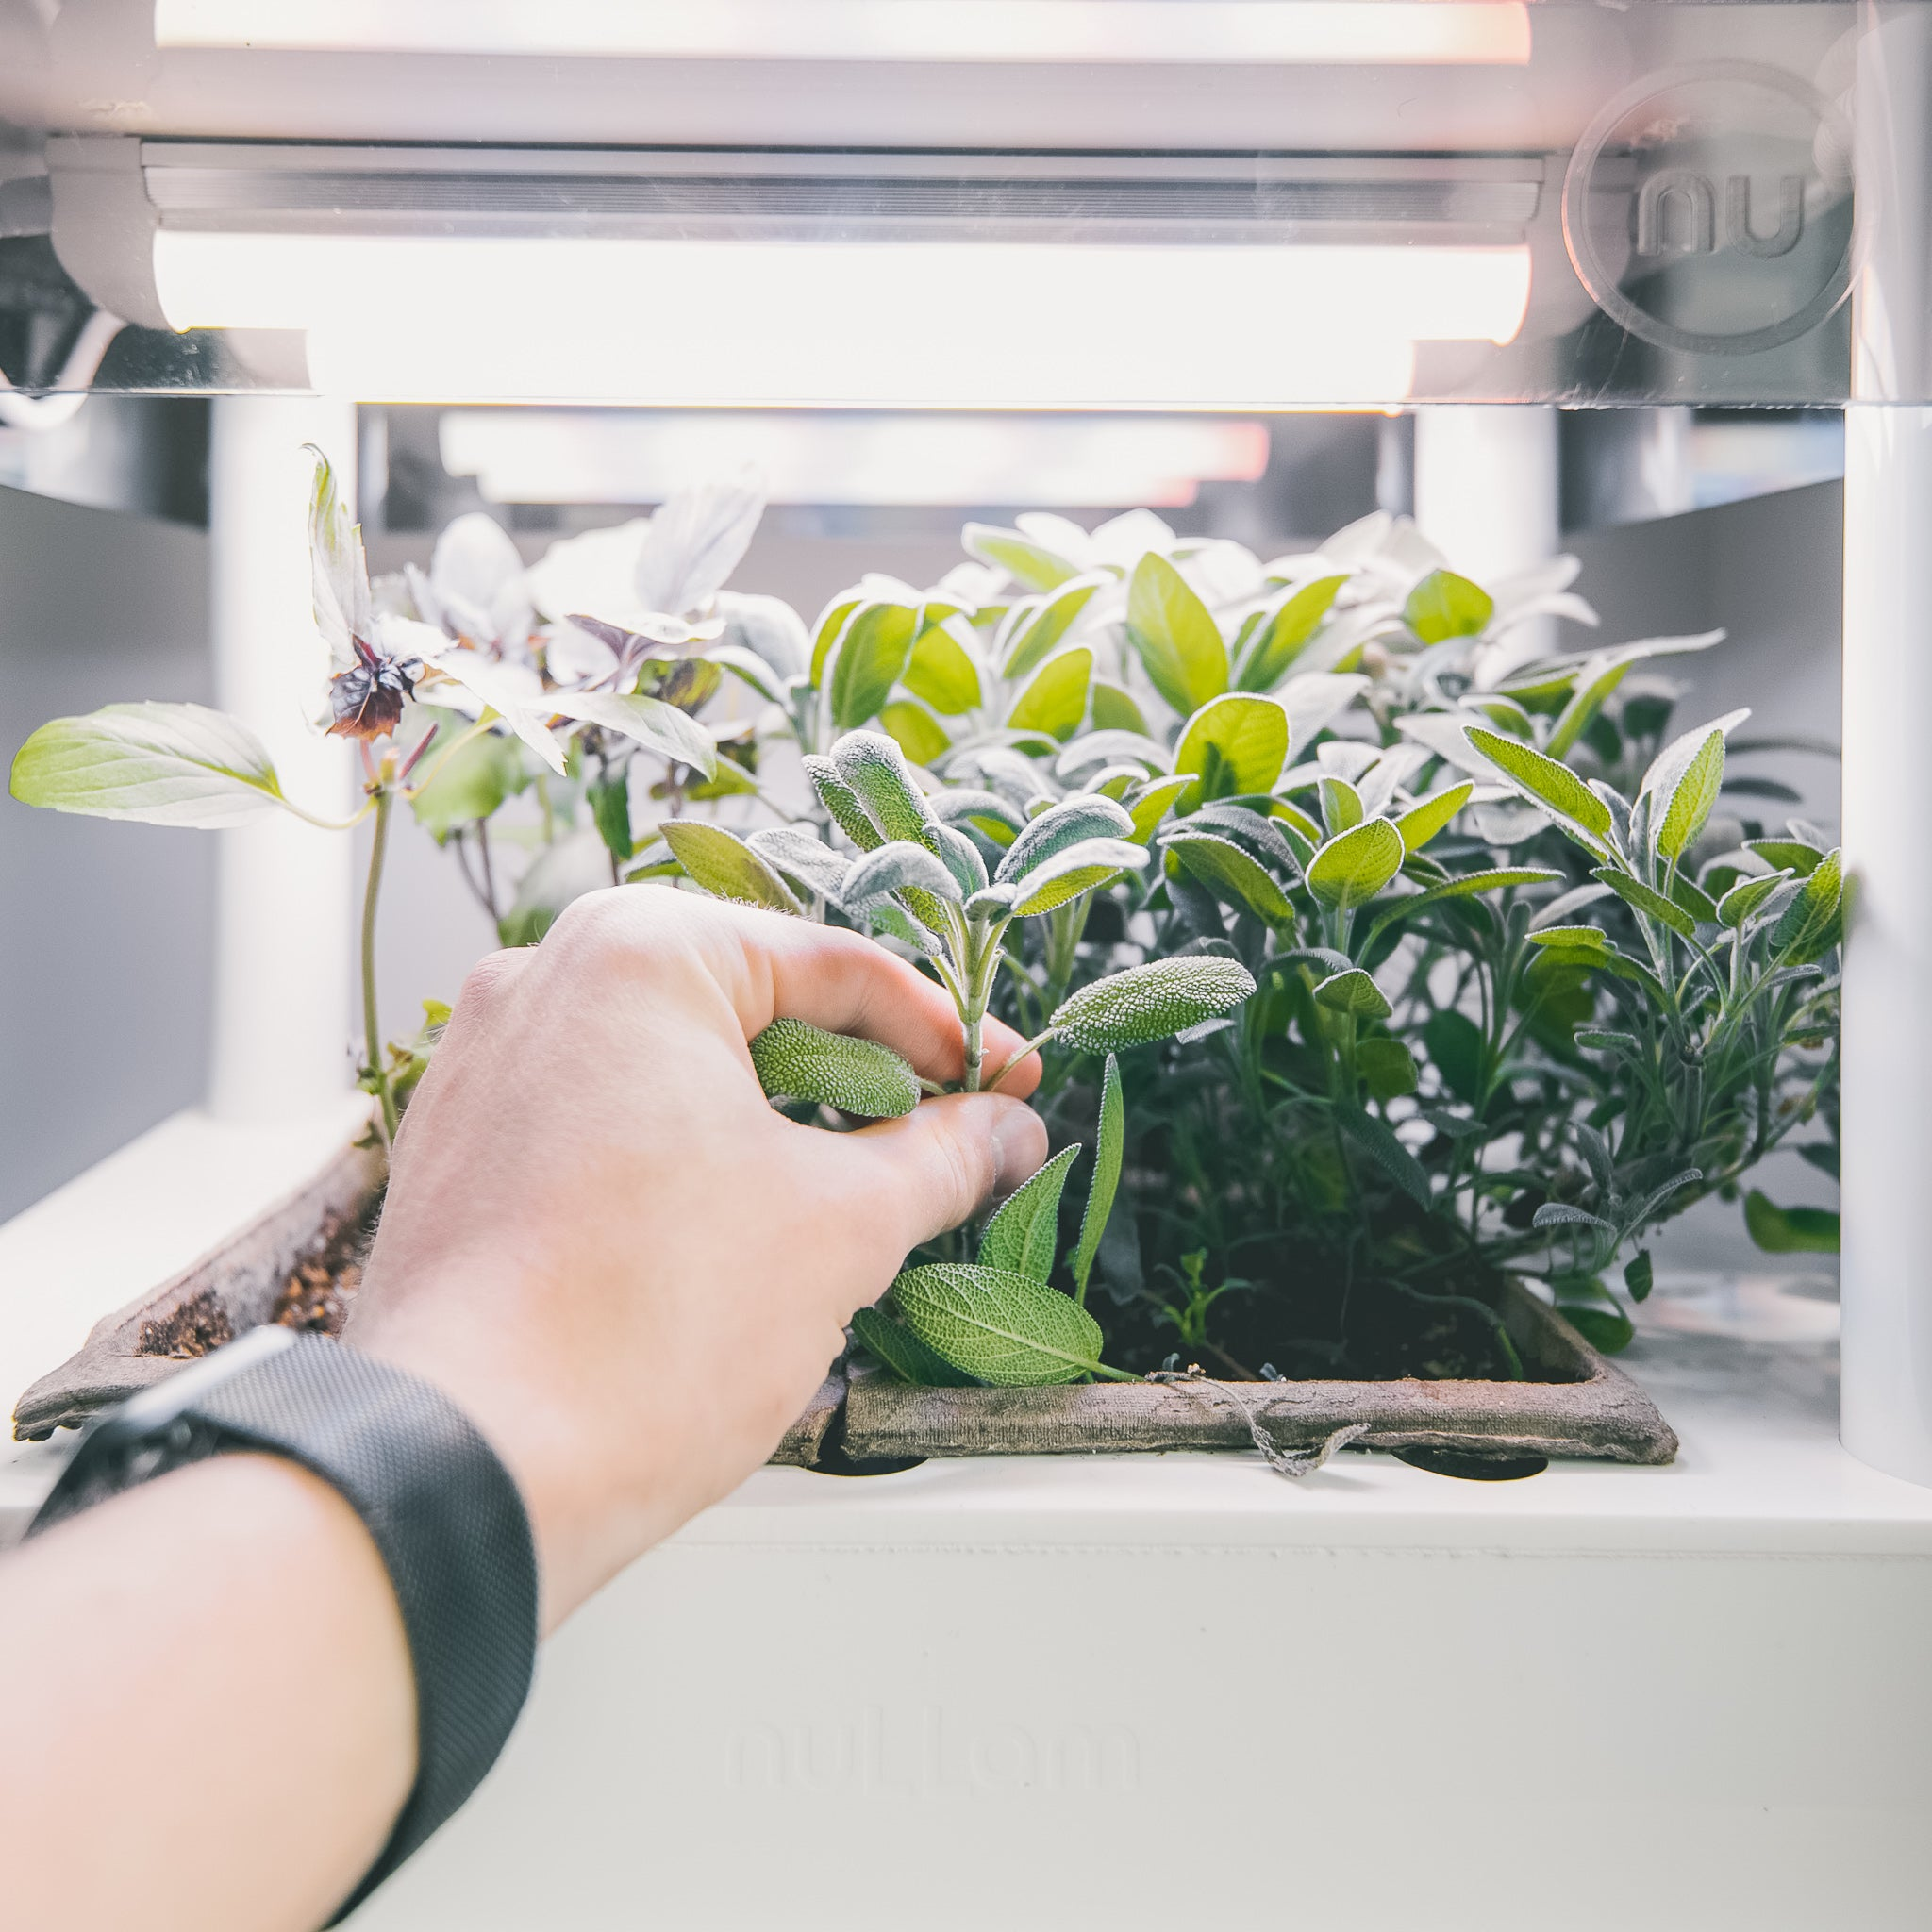 Indoor Gardening - Future is here!